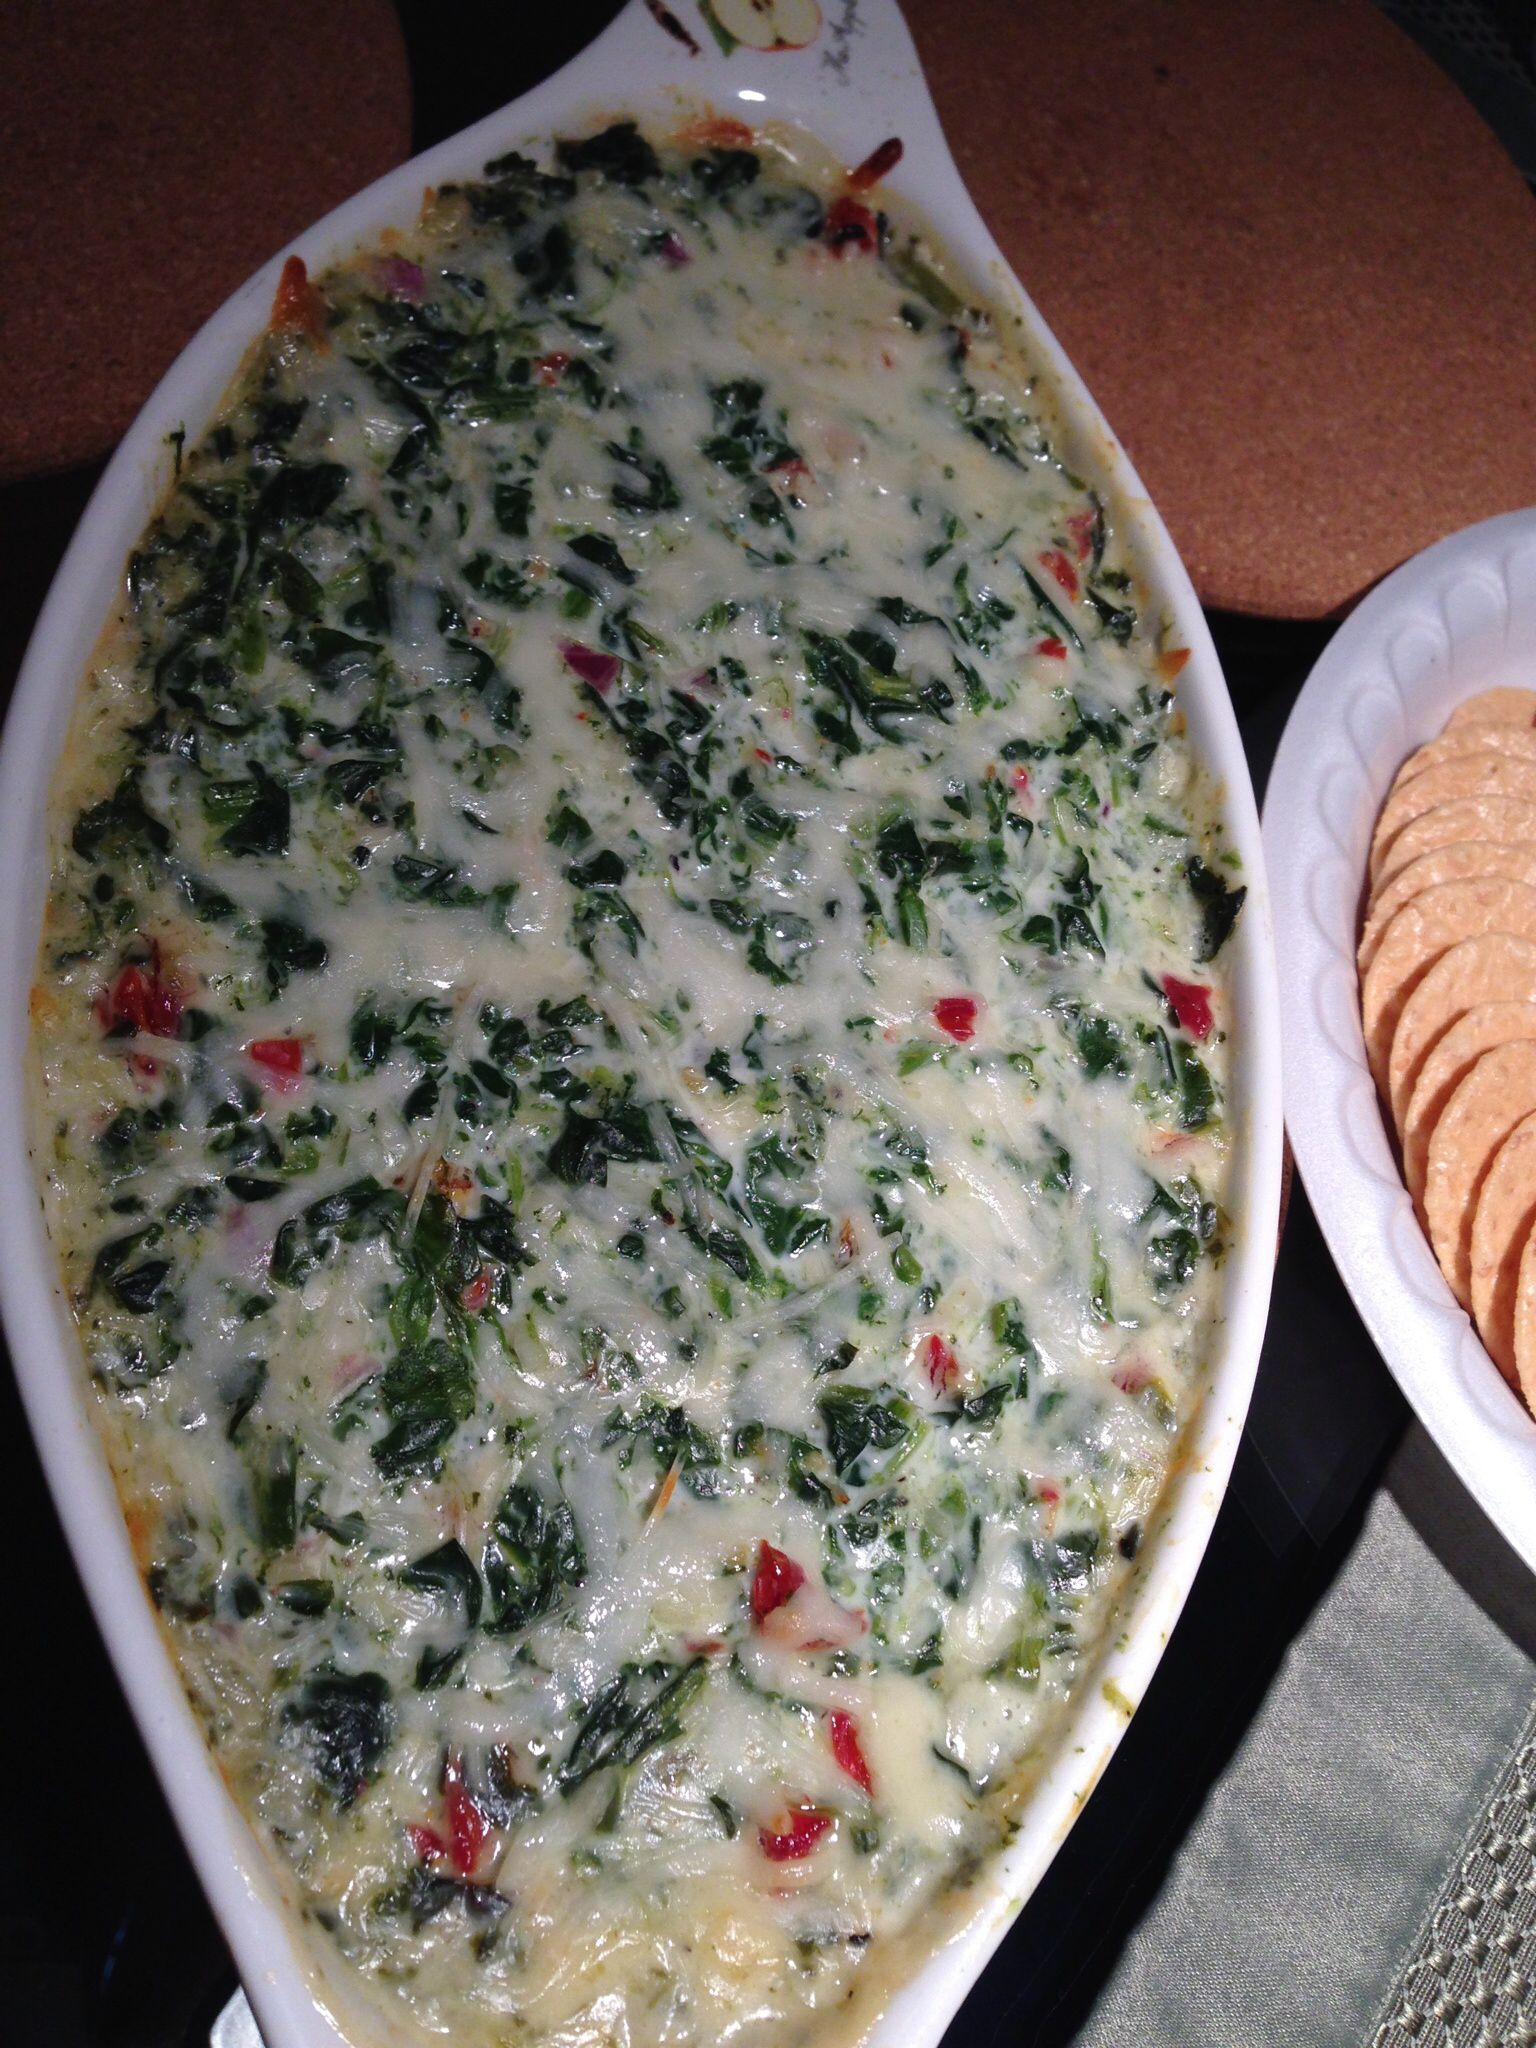 Garlicky Kale and sundried tomato dip